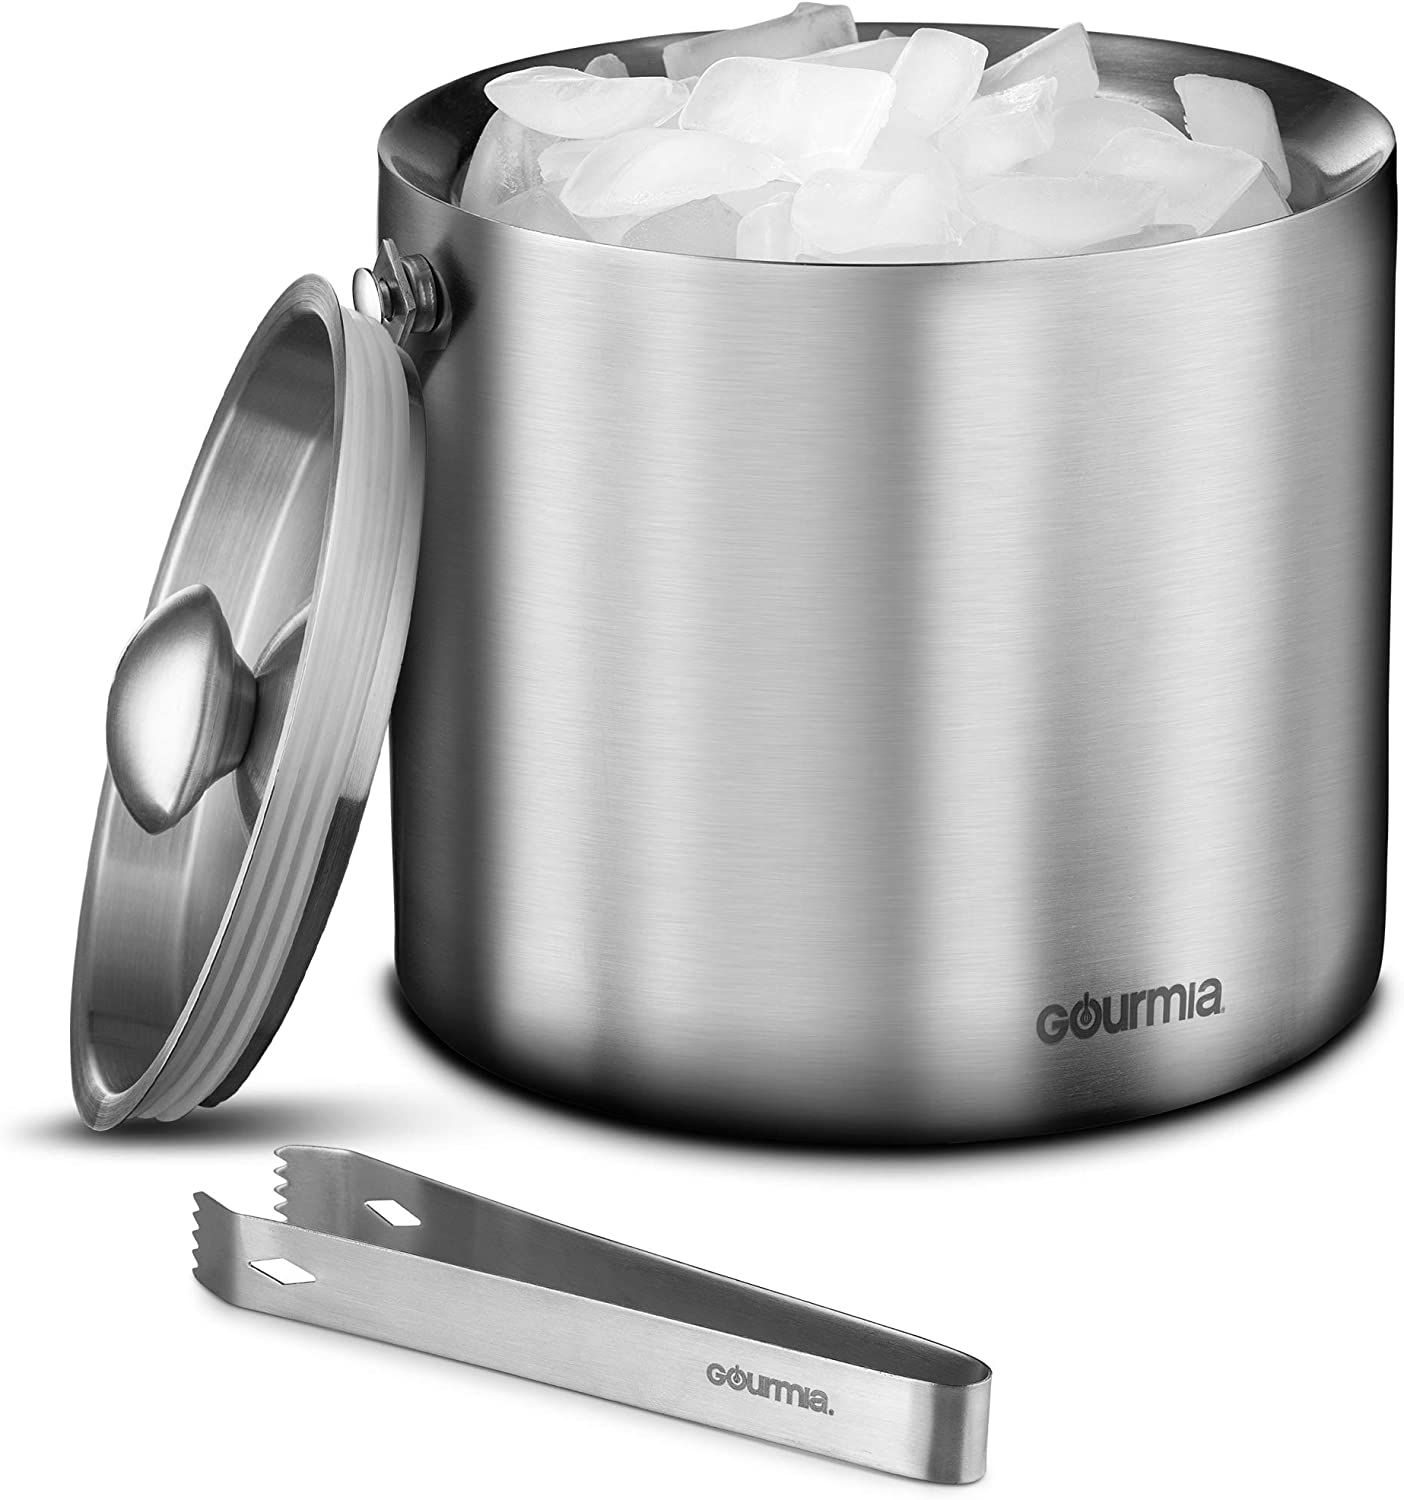 Gourmia GIB9385 Stainless Steel Ice Bucket With Tongs - 3 Liter Double Walled Insulated with Airtight Leak Resistant Lid and Carrying Handle – Mirror Polish Finish – Elegant Gift